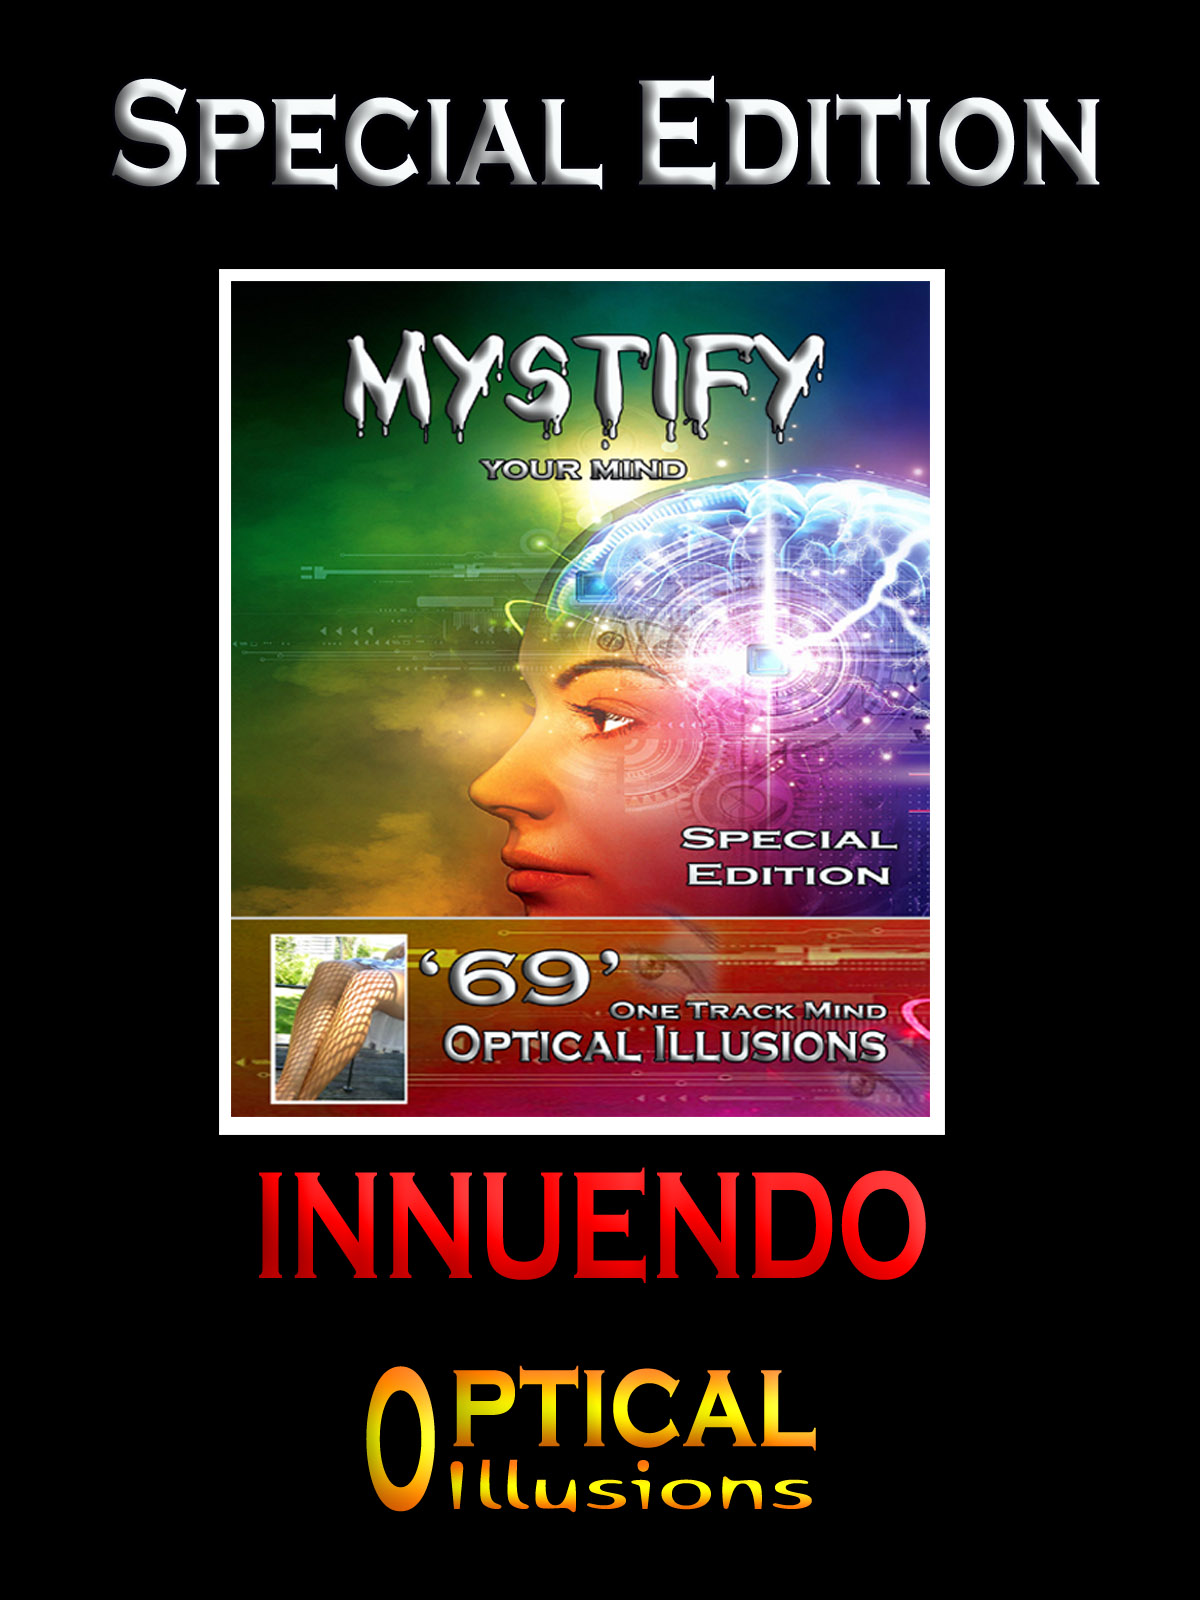 Special Edition Mystify your Mind